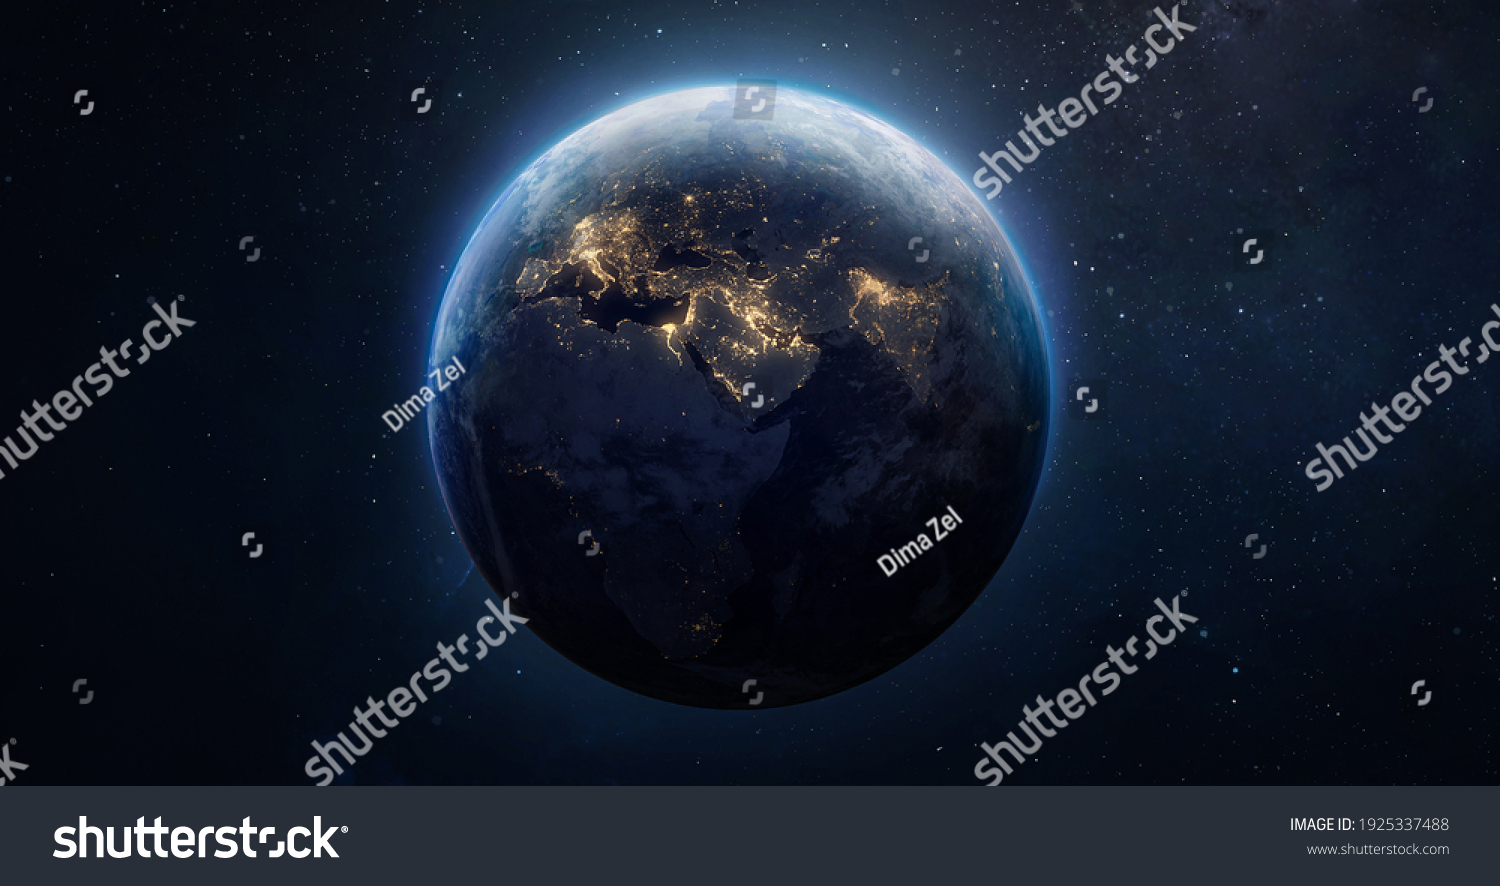 Sphere of nightly Earth planet in outer space. City lights on planet. Life of people. Solar system element. Elements of this image furnished by NASA #1925337488